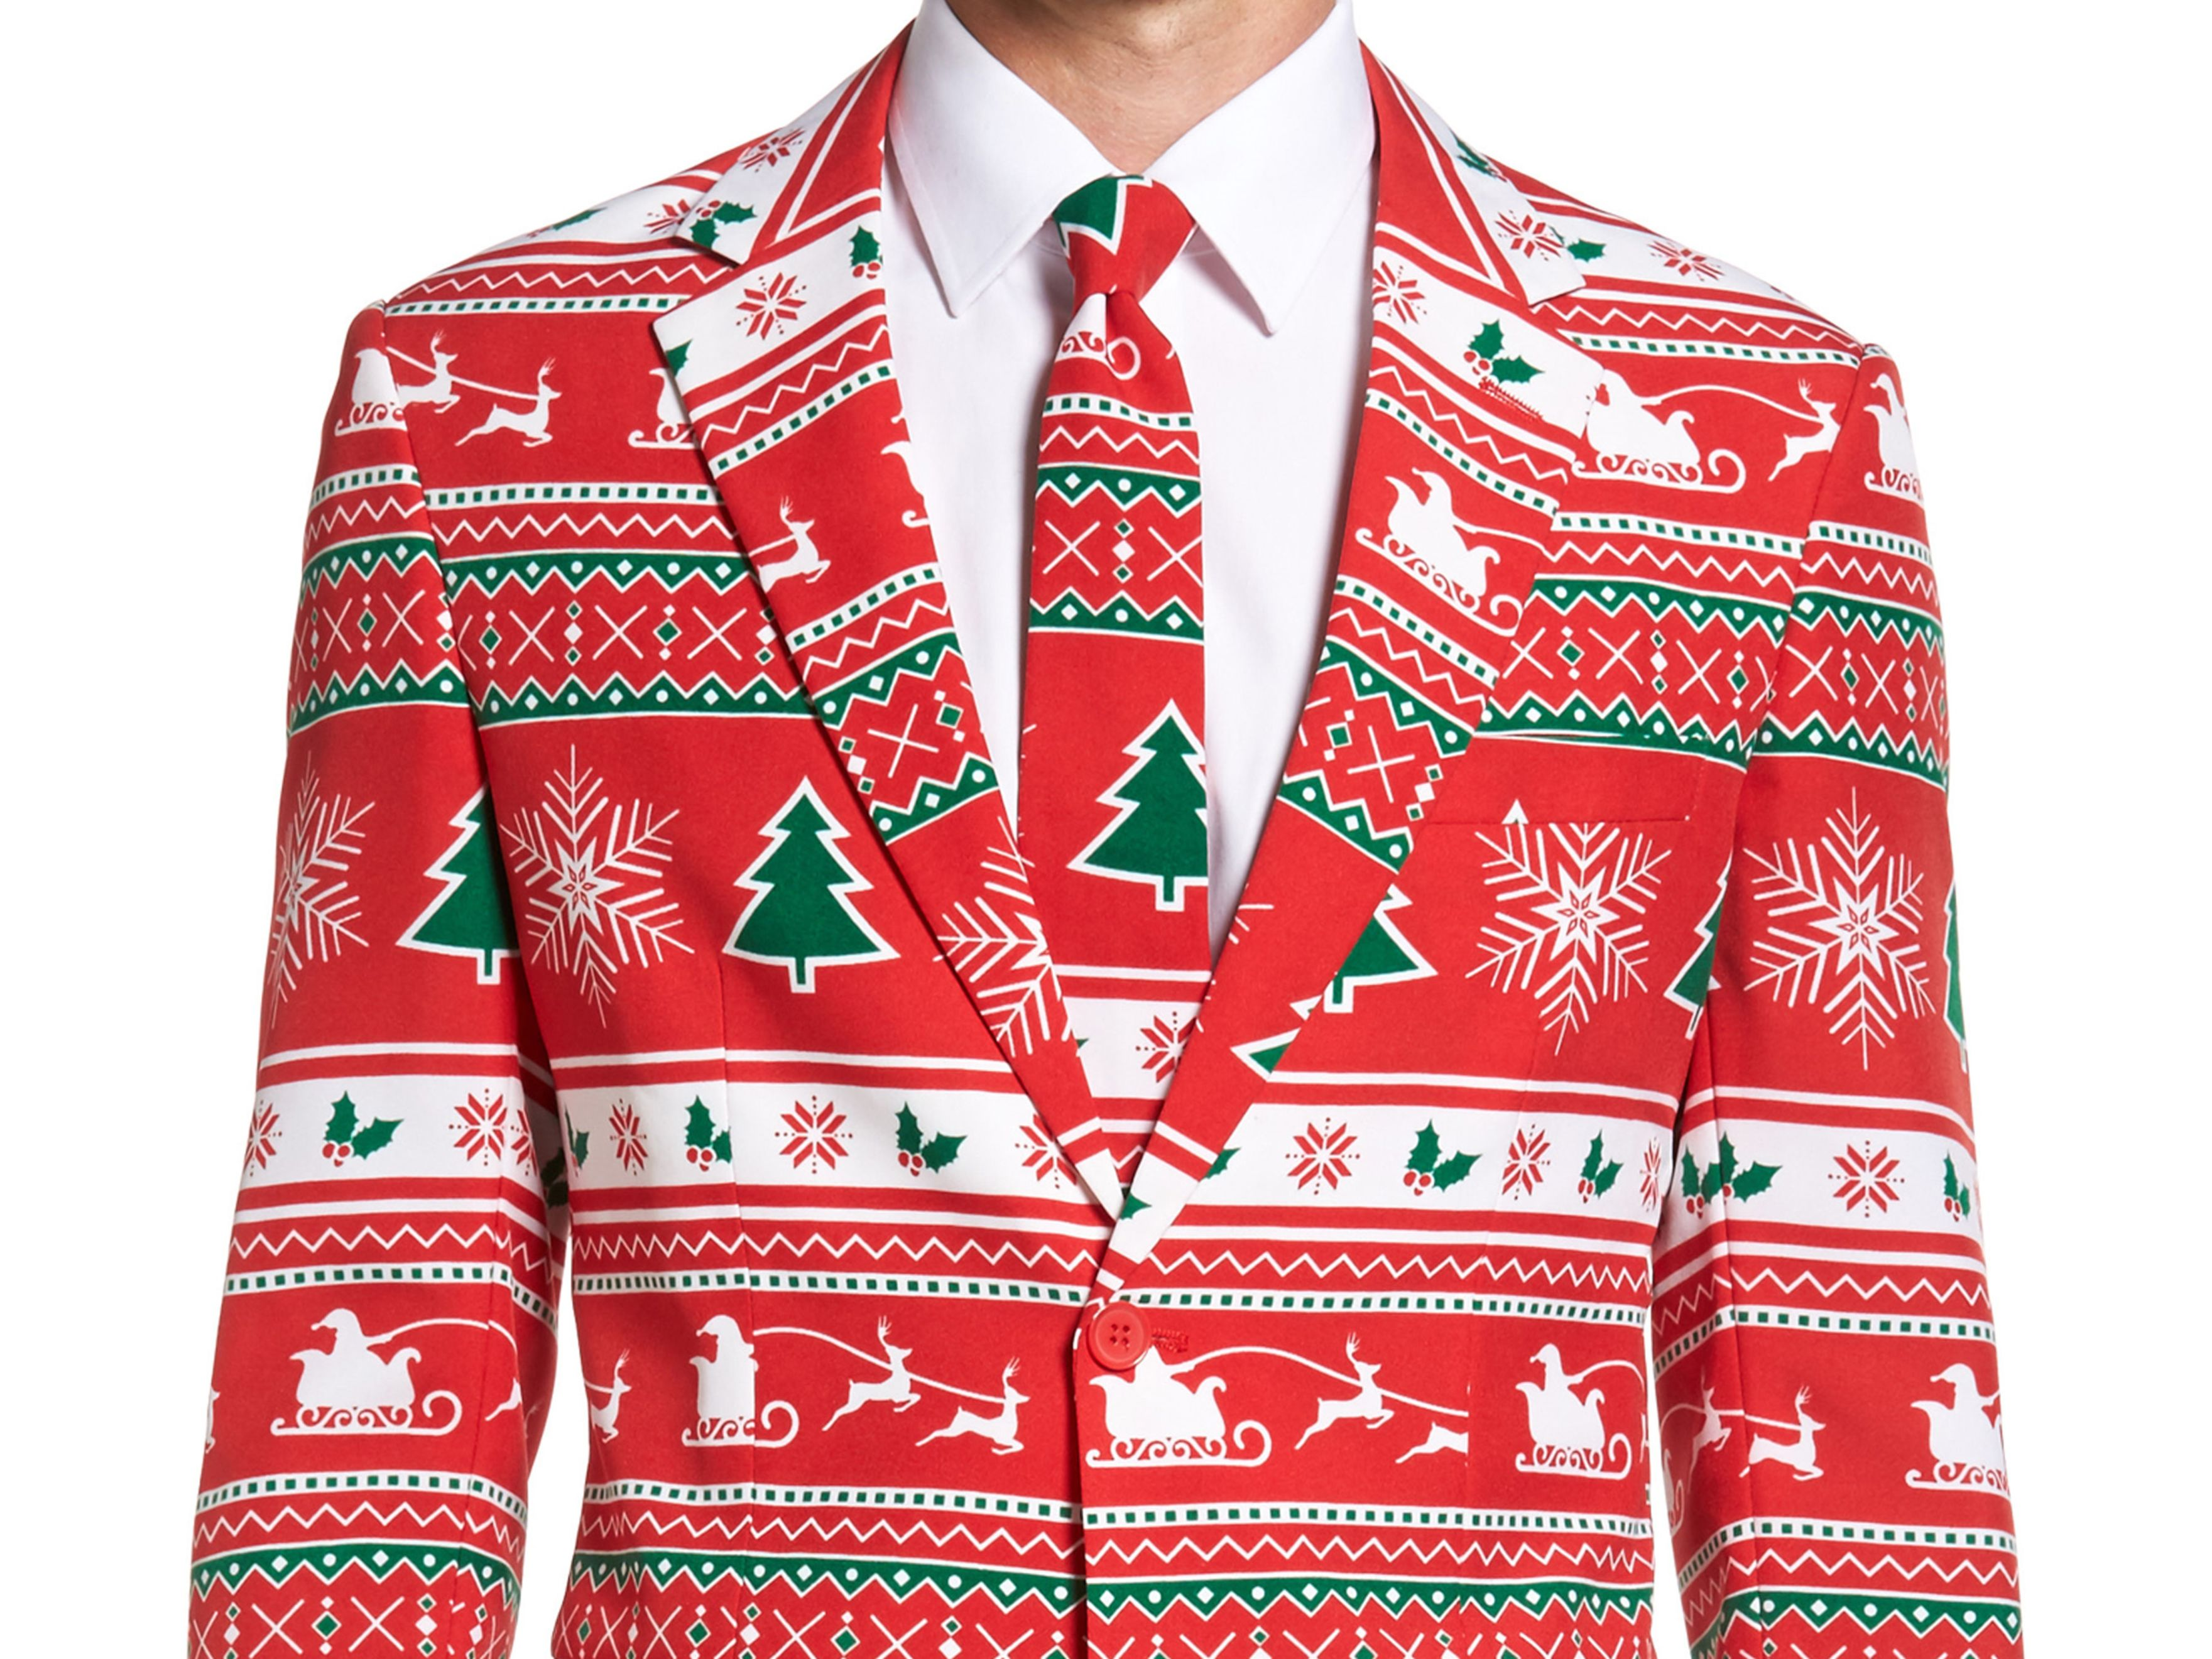 Opposuits  winter wonderland  trim fit two piece suit with tie  99.99 item  5207697 lehggq